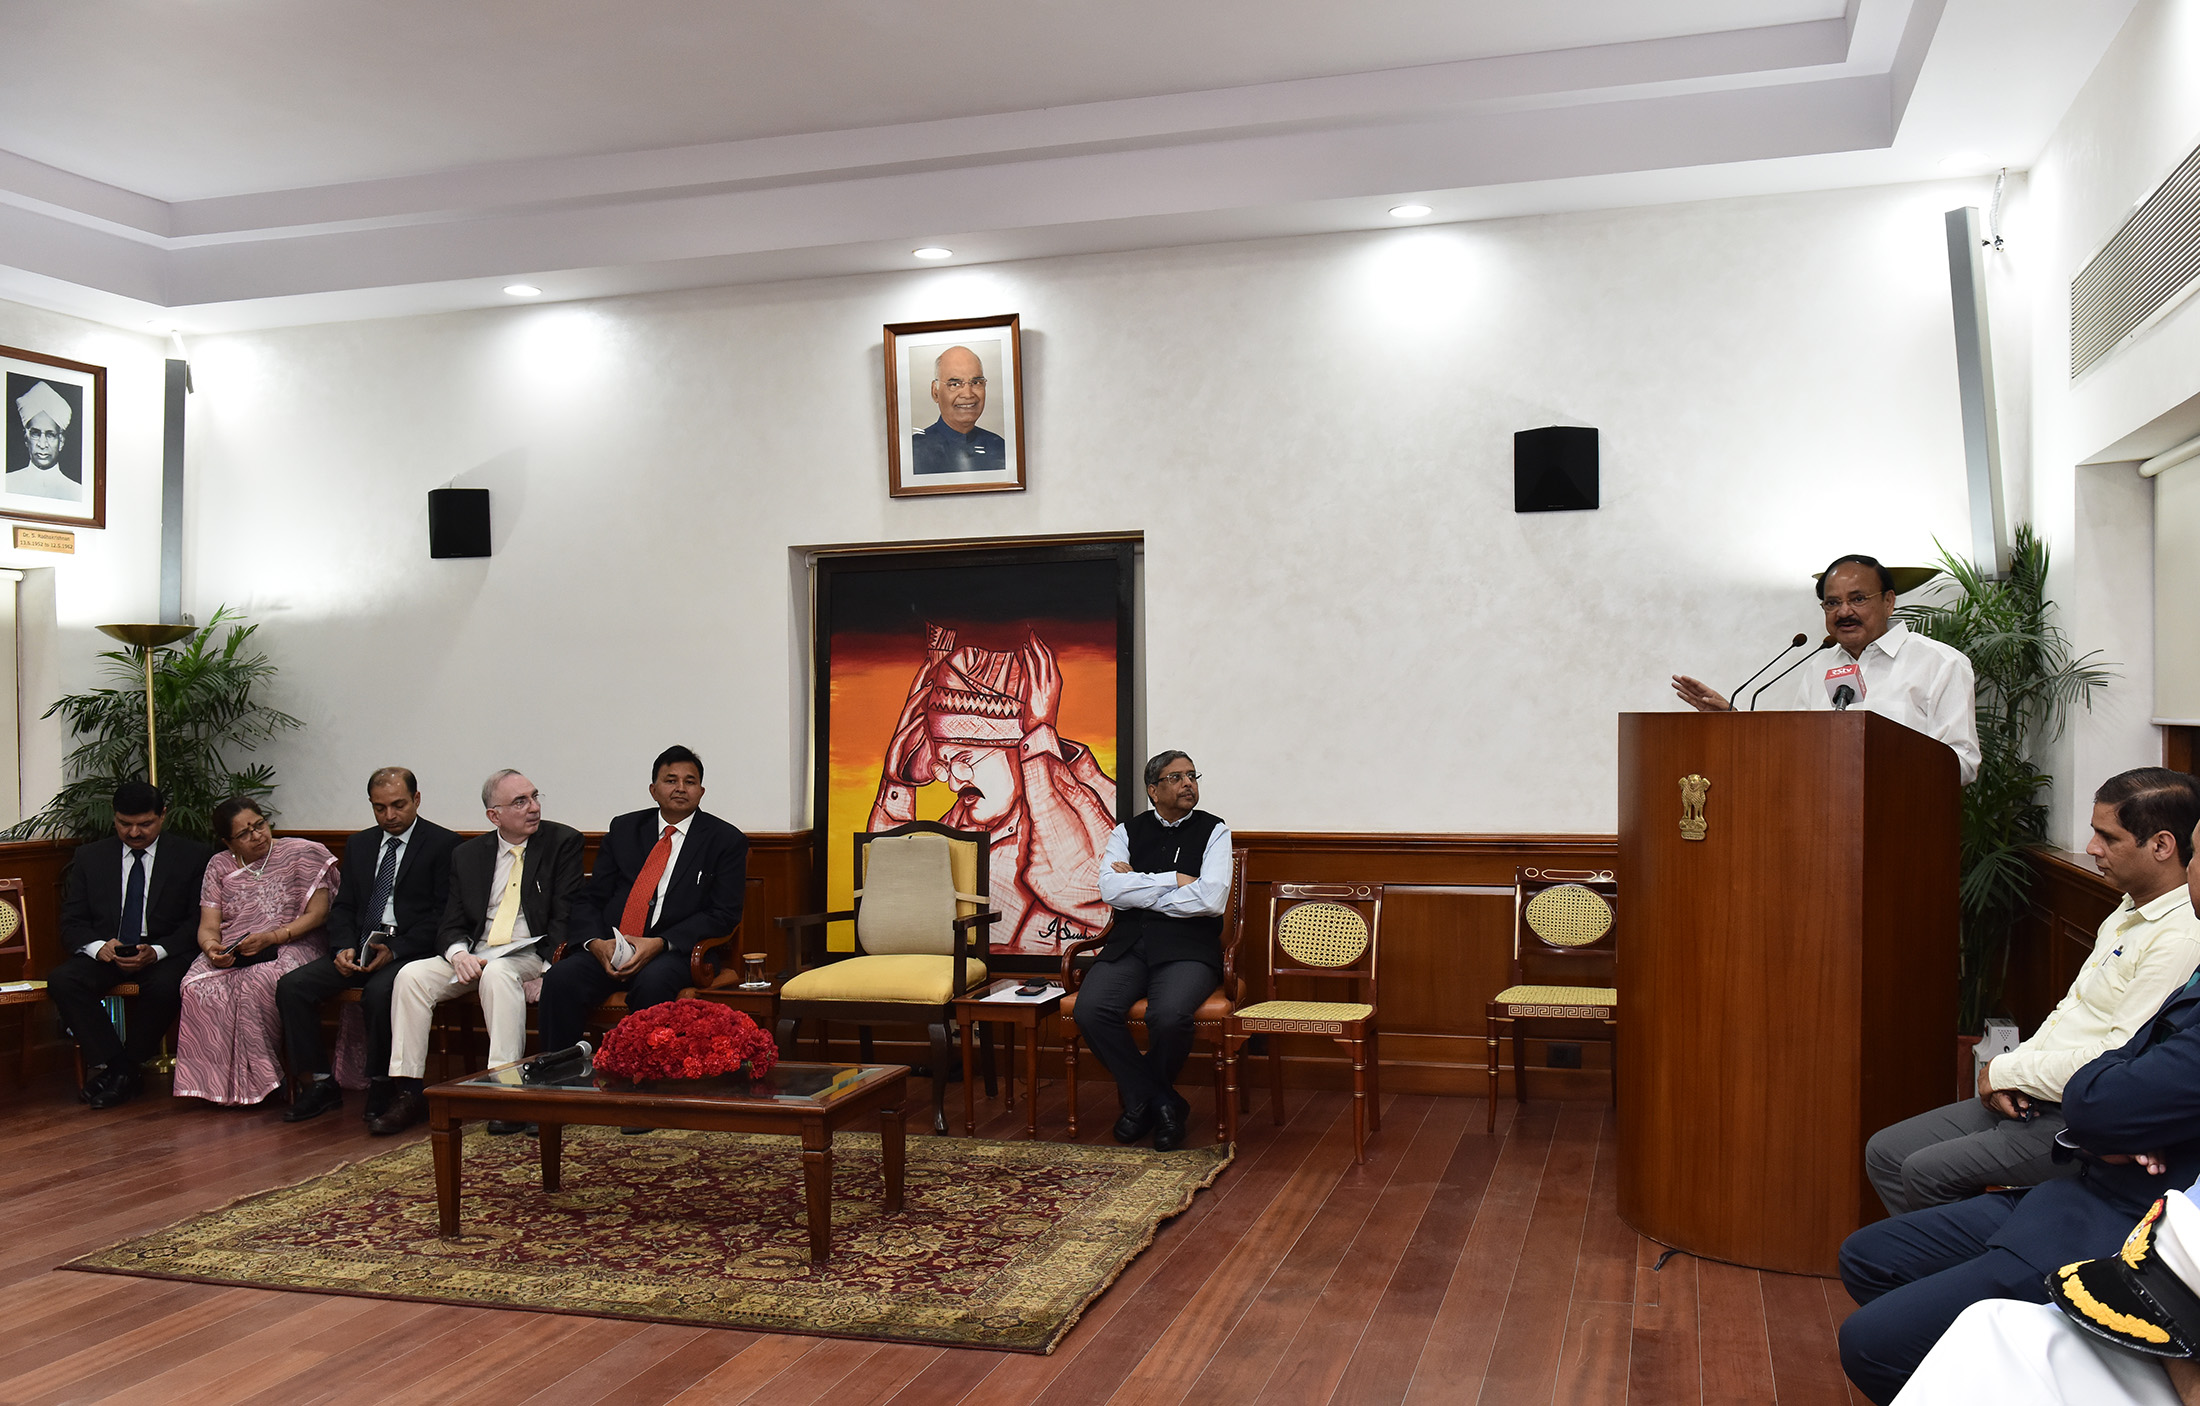 The Vice President, Shri M. Venkaiah Naidu addressing the 44th batch of Advance Professional Programme in Public Administration, sponsored by the Indian Institute of Public Administration, in New Delhi on April 15, 2019.